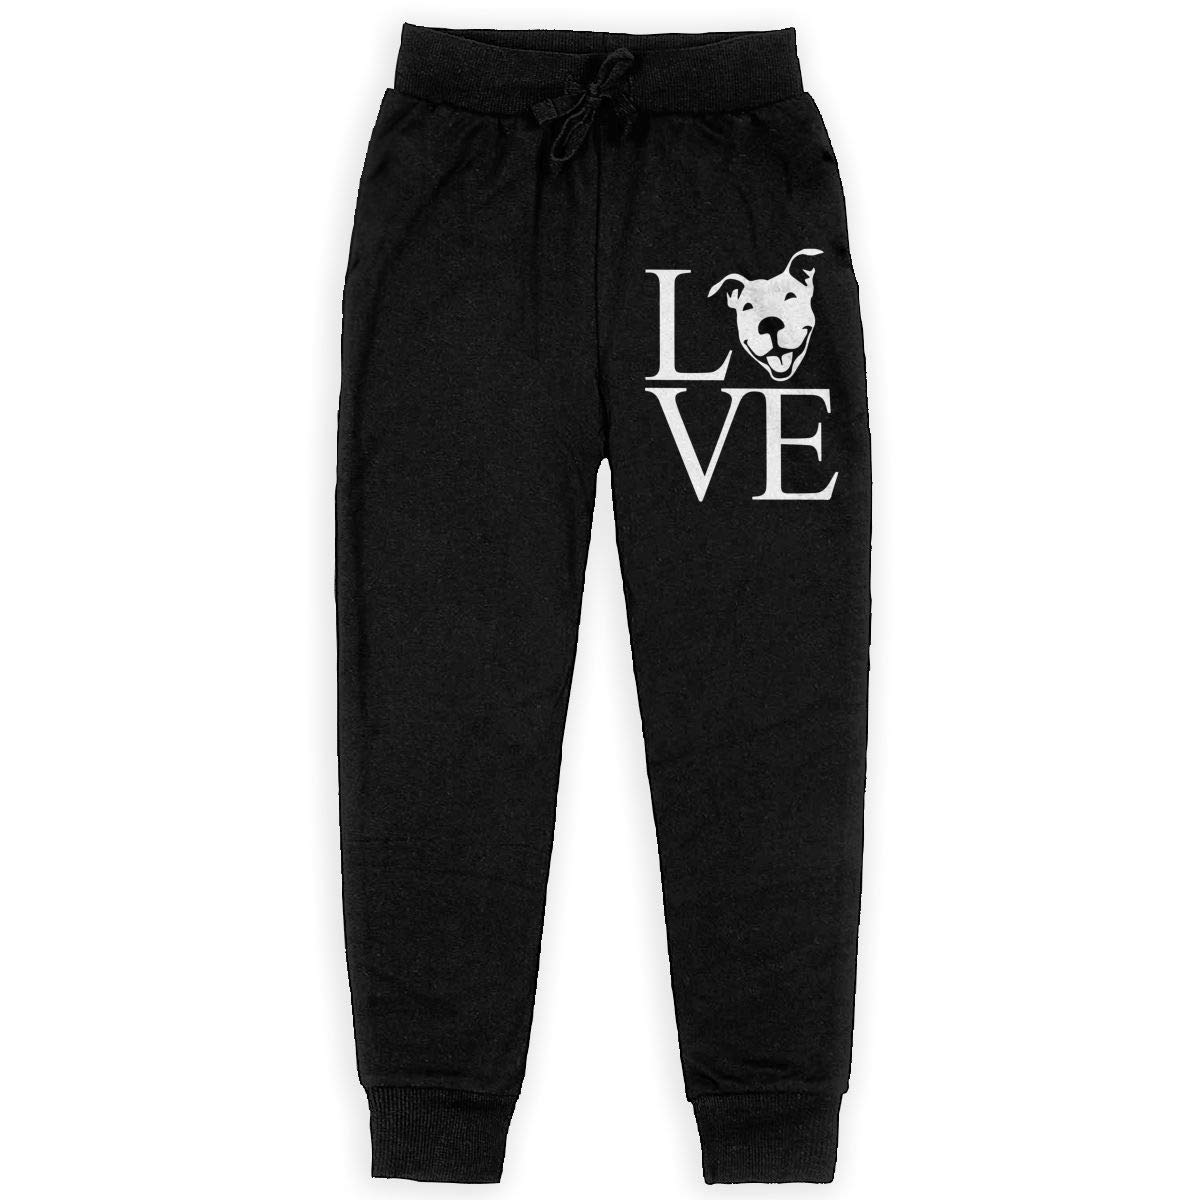 Love Pit Bull Soft//Cozy Sweatpants Youth Active Basic Jogger Fleece Pants for Teenager Boys